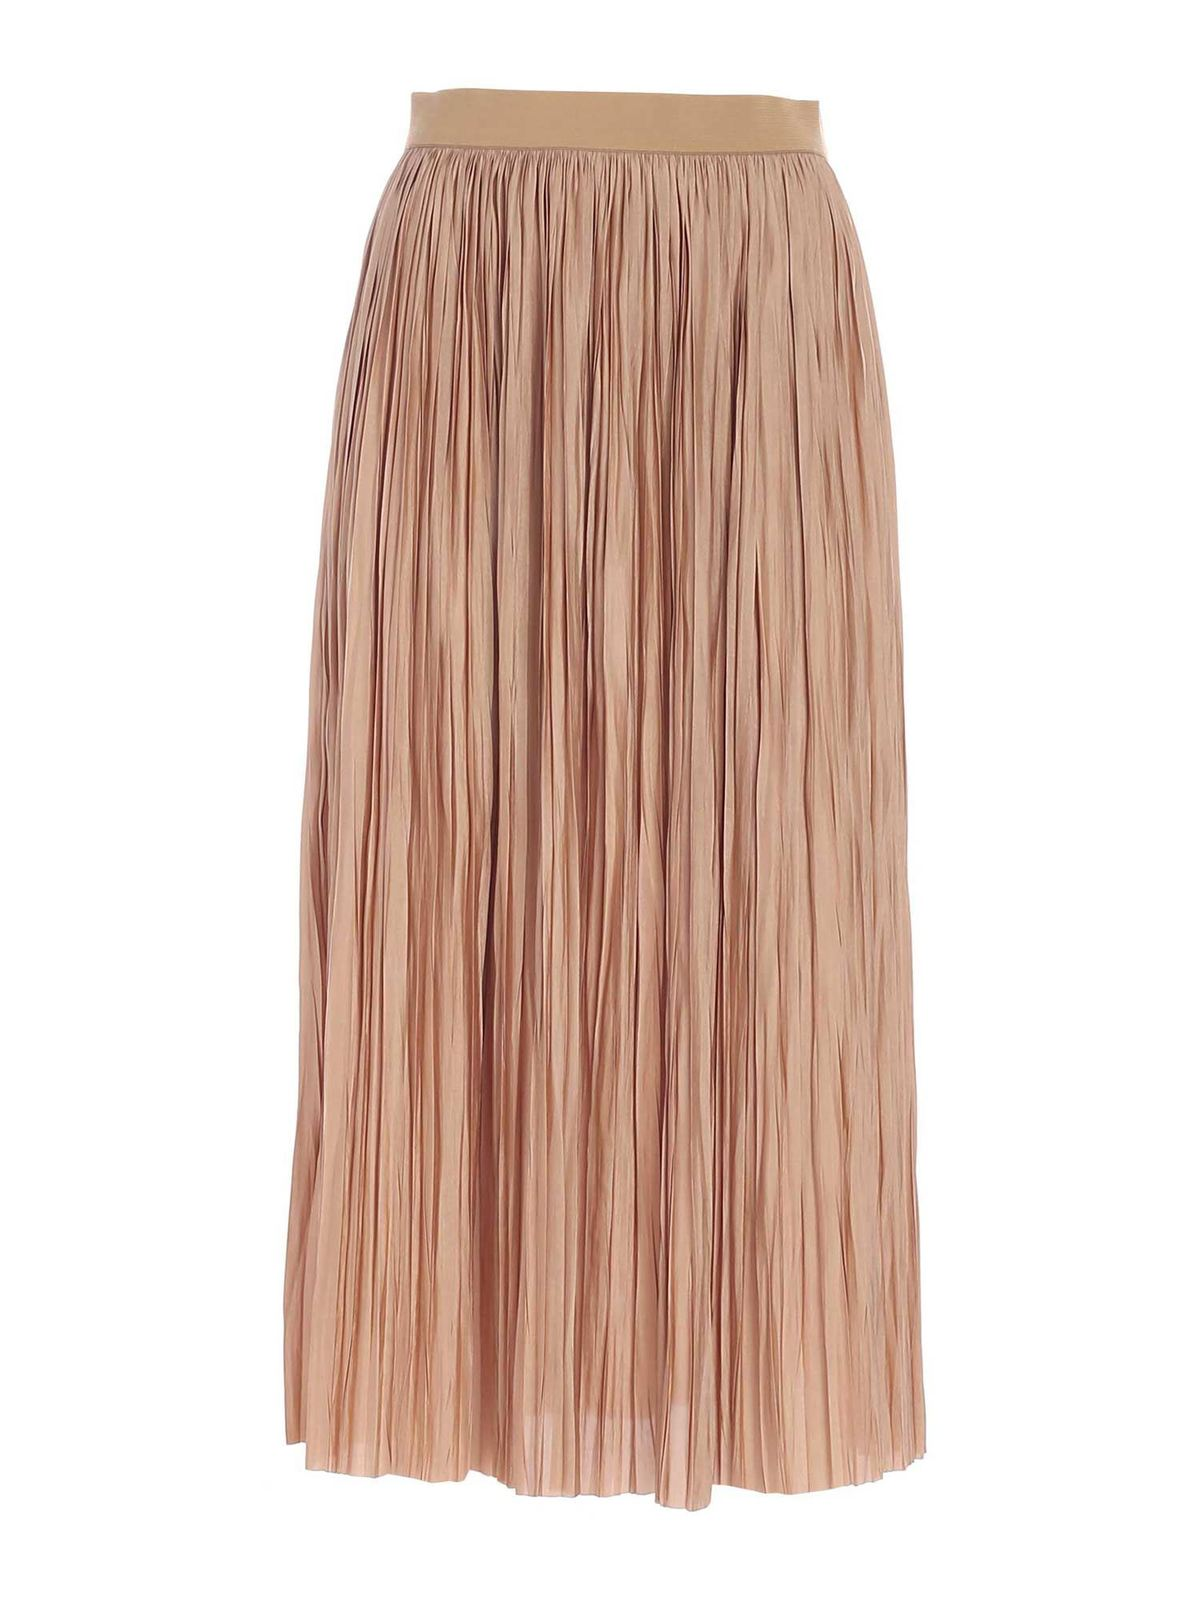 Roberto Collina PLEATED SKIRT IN CAMEL COLOR